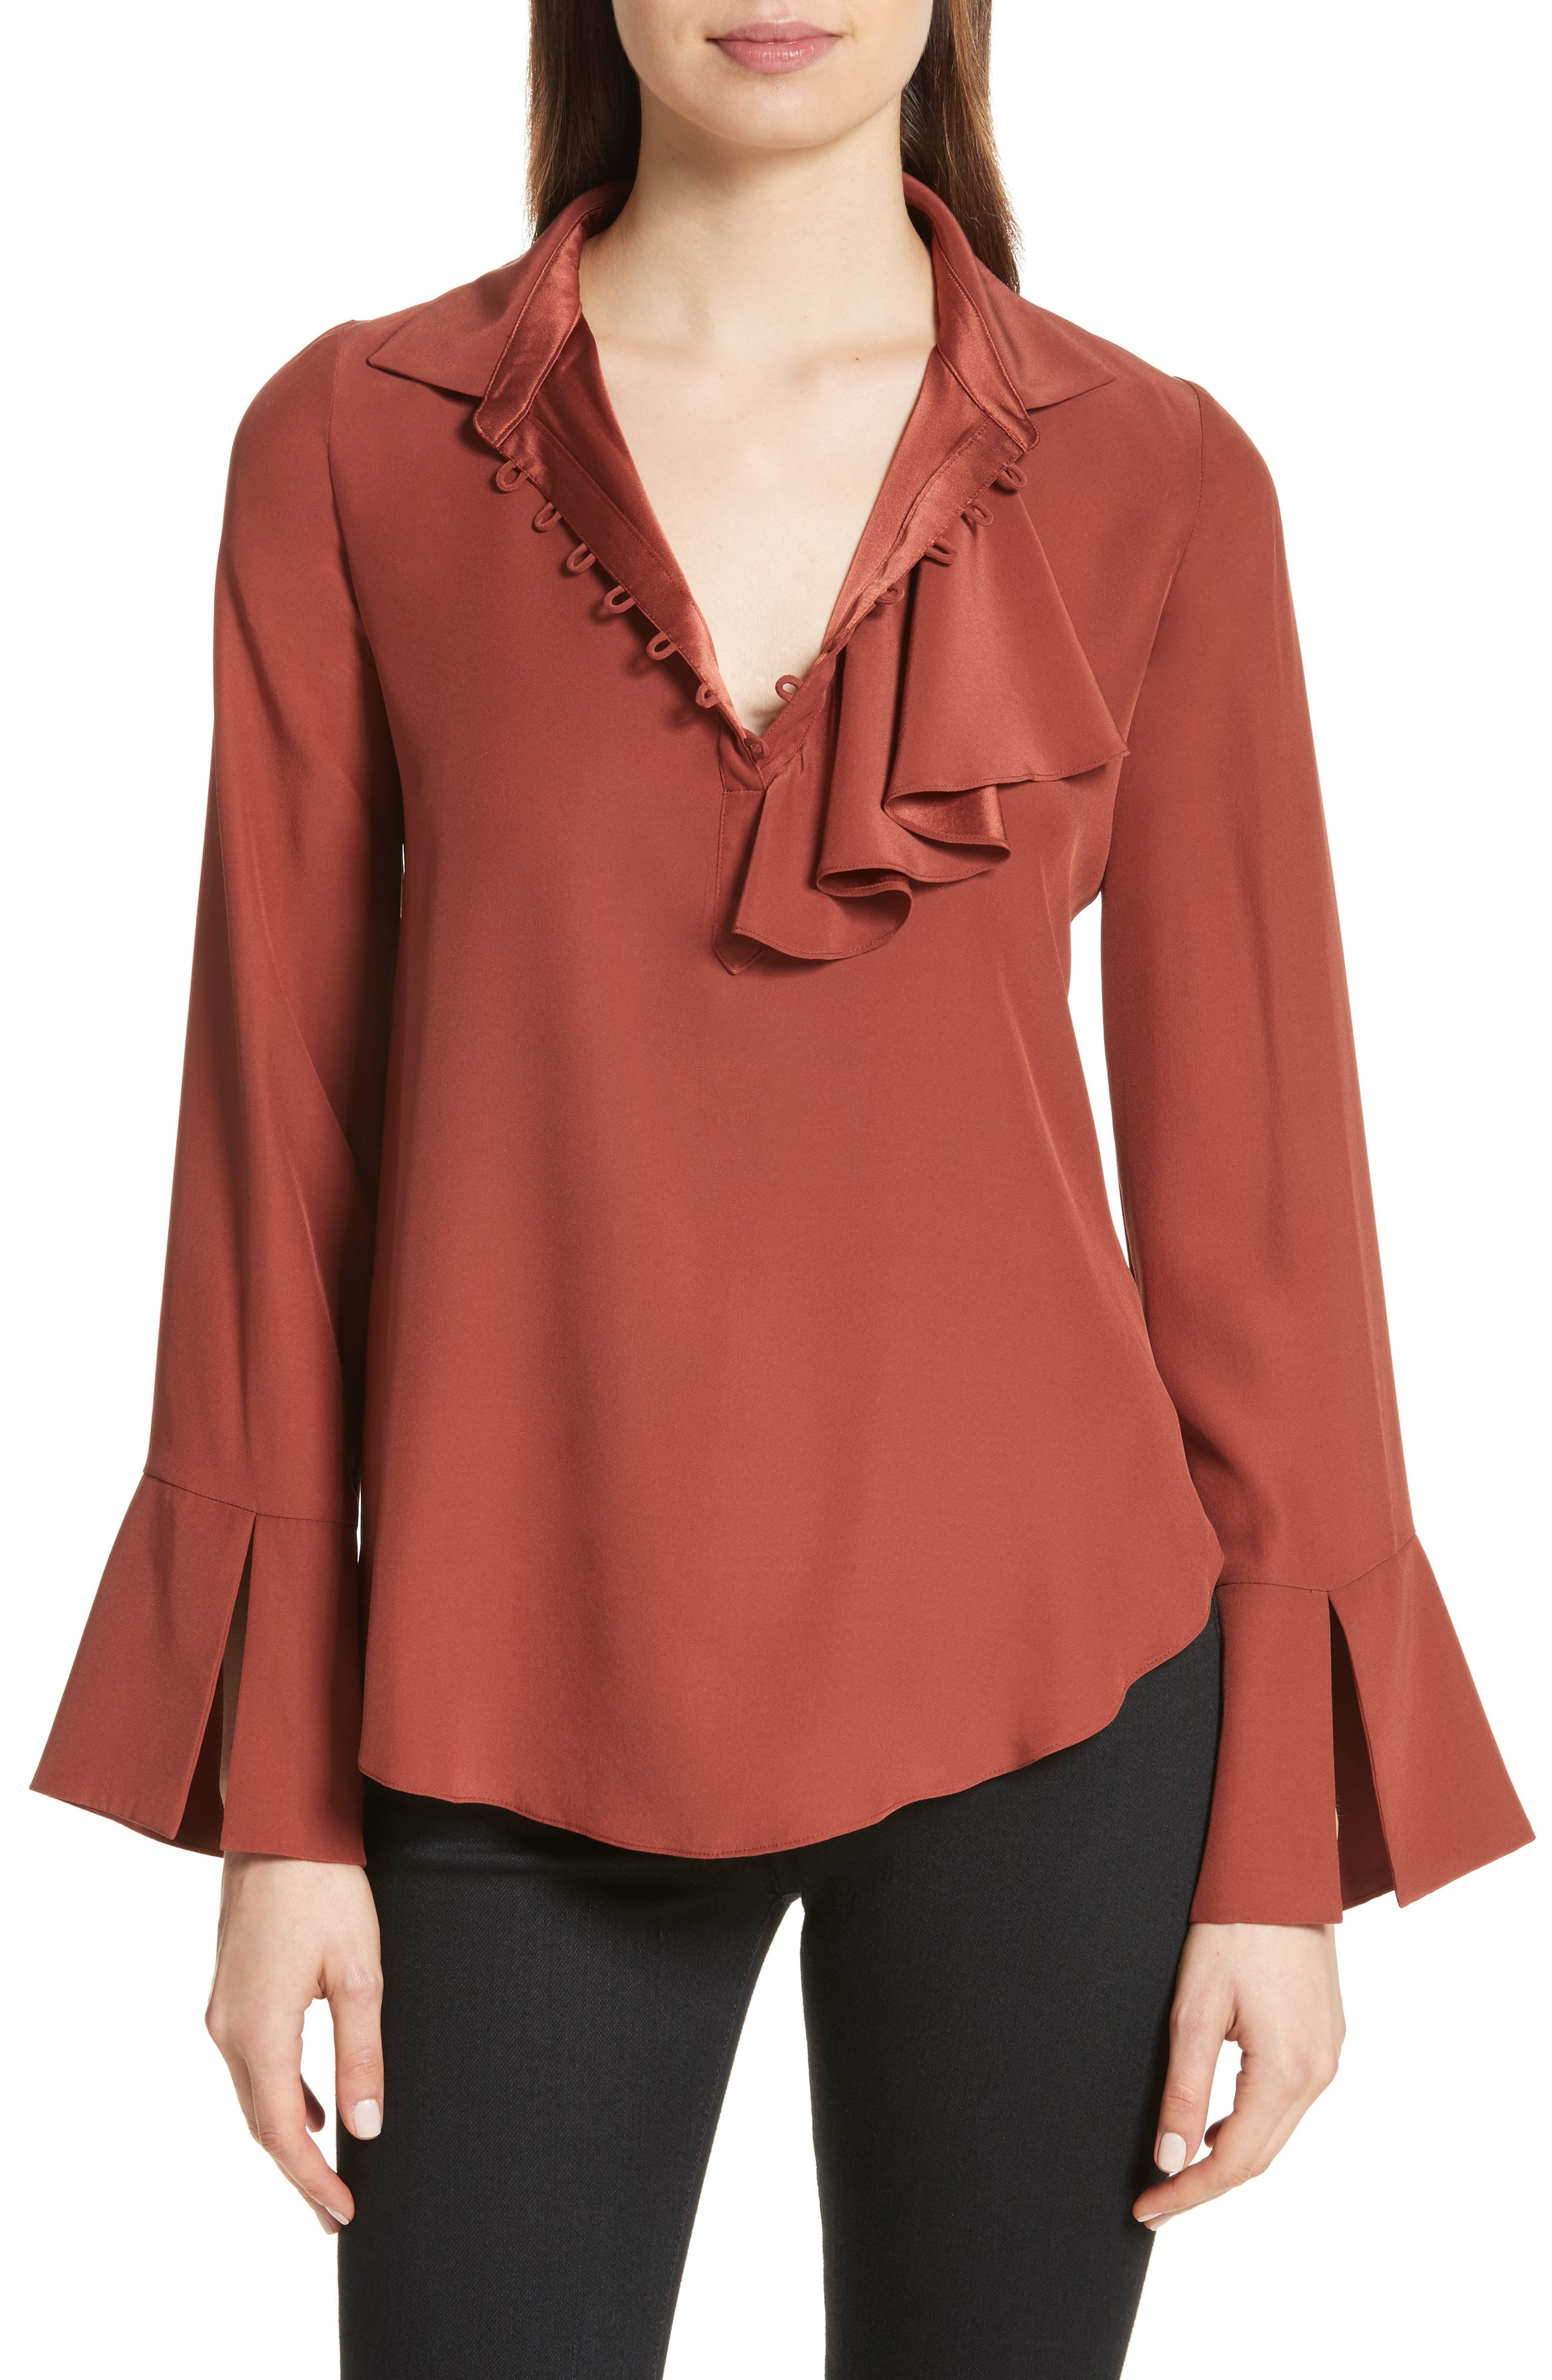 Norla Silk Bow Blouse,                             Main thumbnail 1, color,                             Tobacco